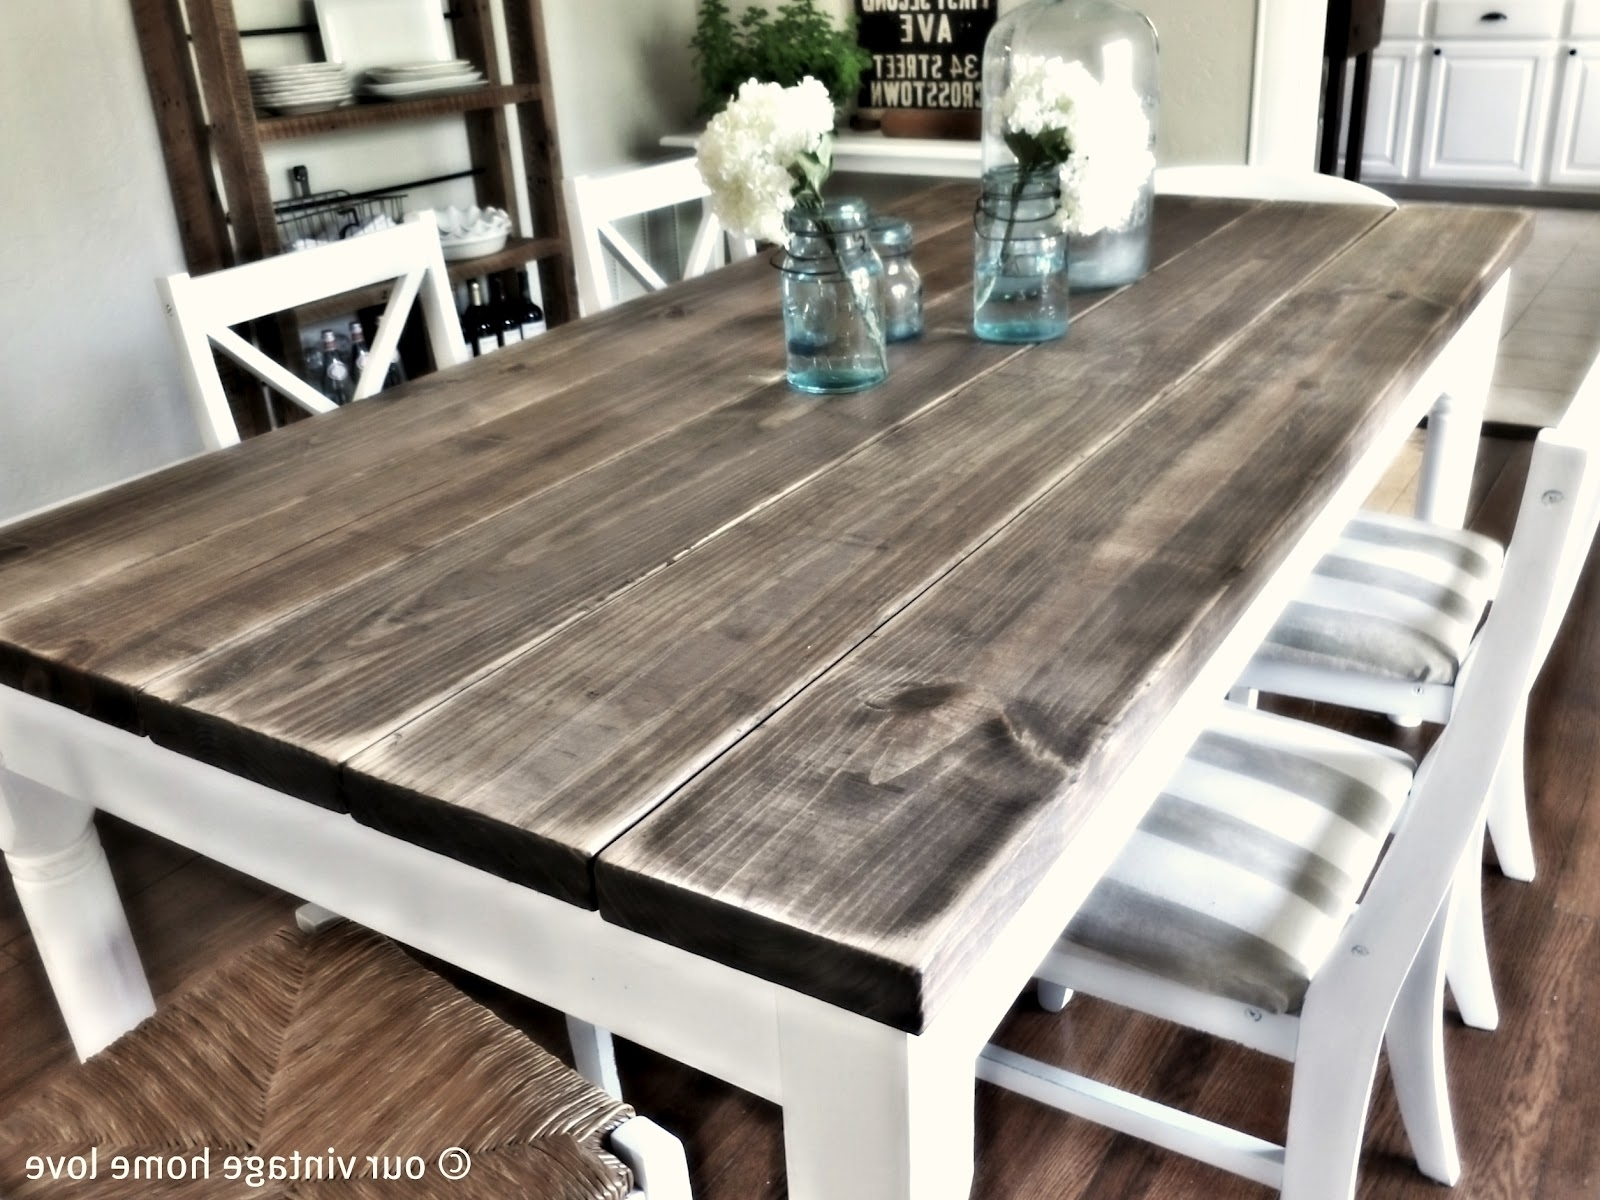 Vintage Home Love: Dining Room Table Tutorial Throughout Trendy Farm Dining Tables (Gallery 5 of 25)